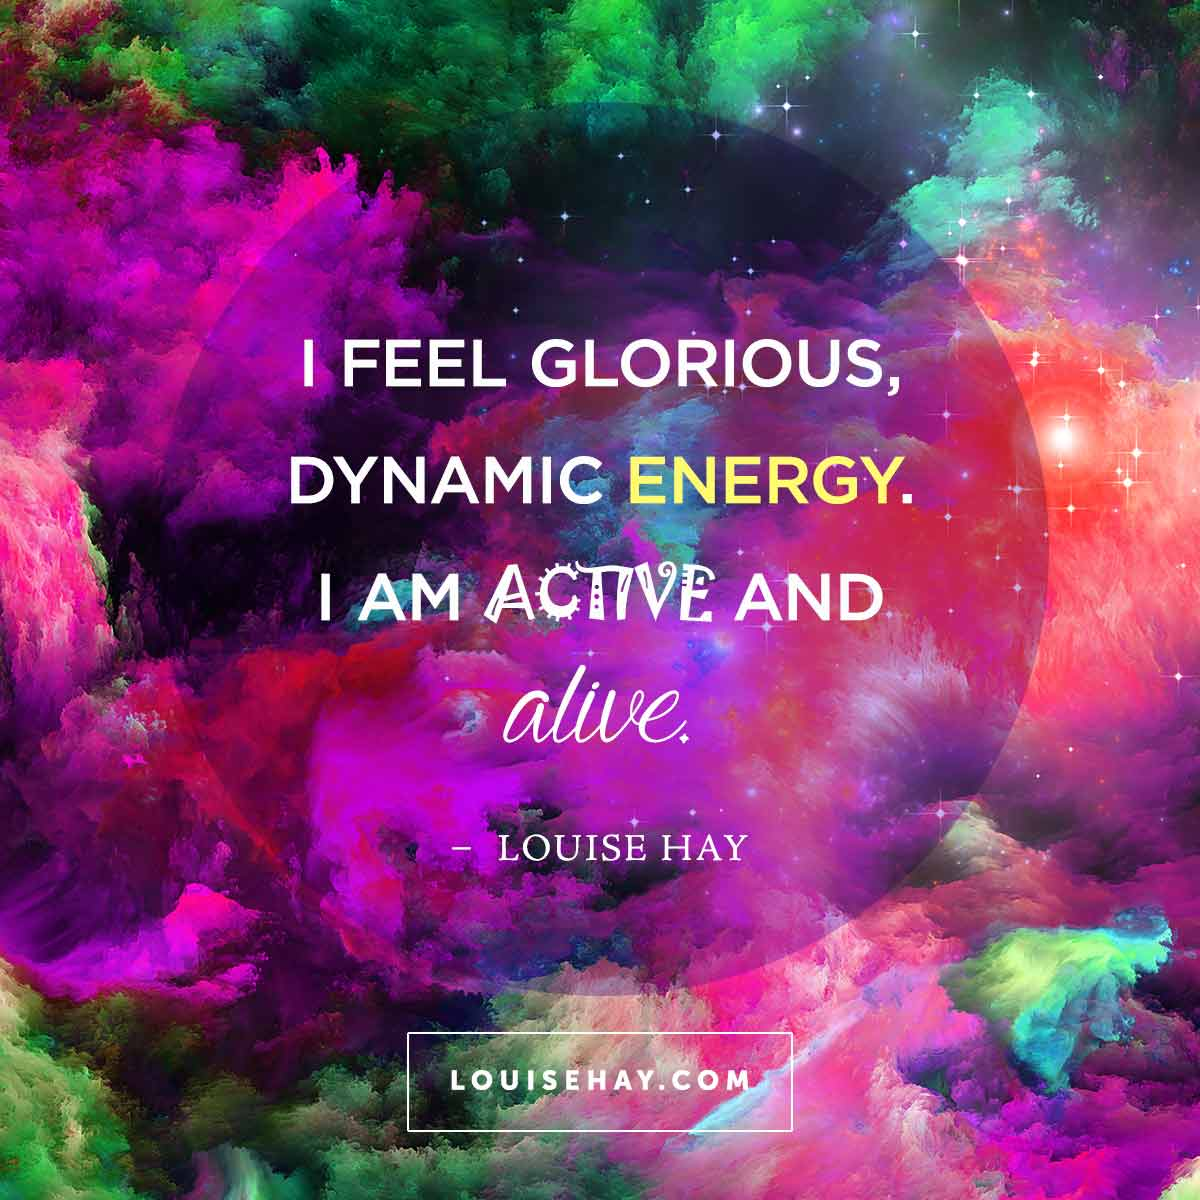 Dynamic Leadership Quotes: Daily Affirmations & Beautiful Quotes From Louise Hay